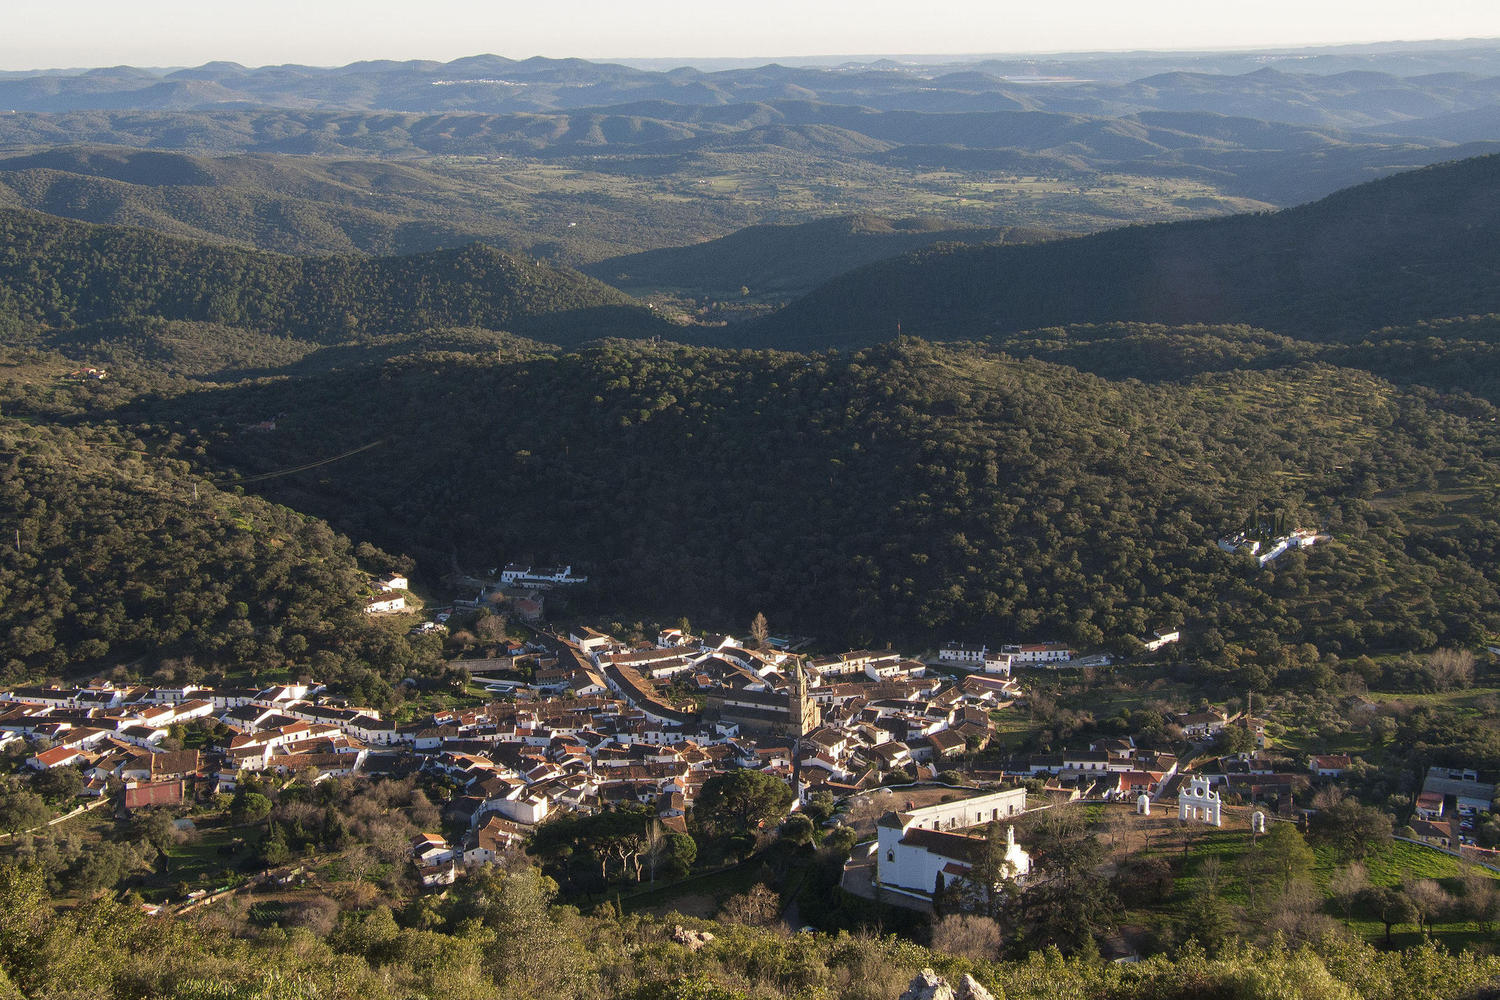 Looking down into Alajar from the top of Arias Montano peak, Aracena